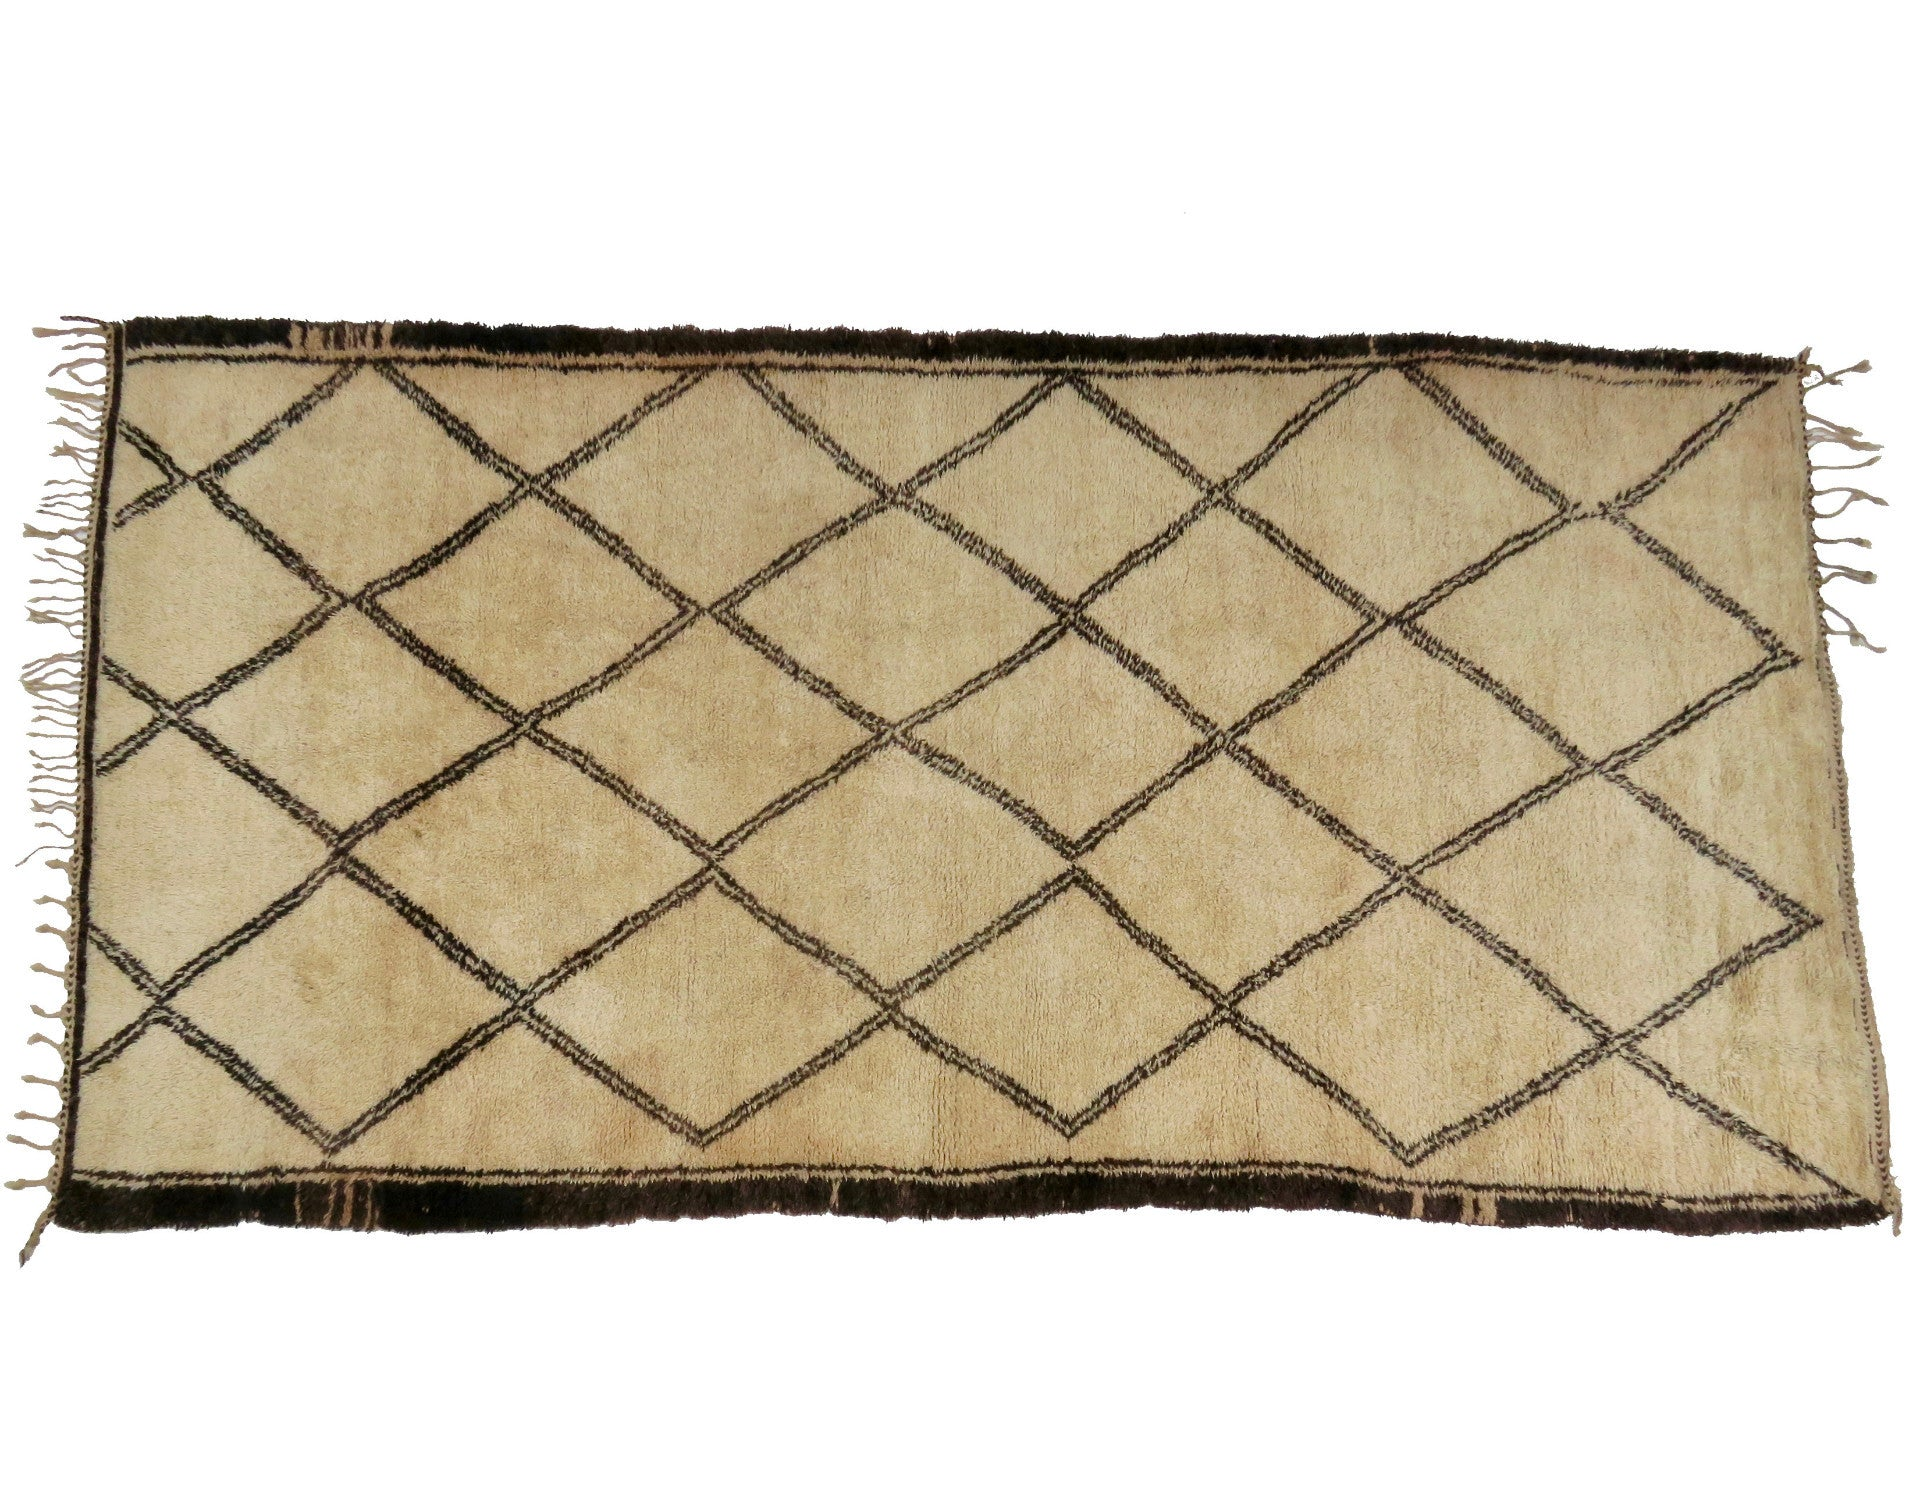 BIG BENI Vintage Moroccan Beni Ourain Rugs - Maven Collection